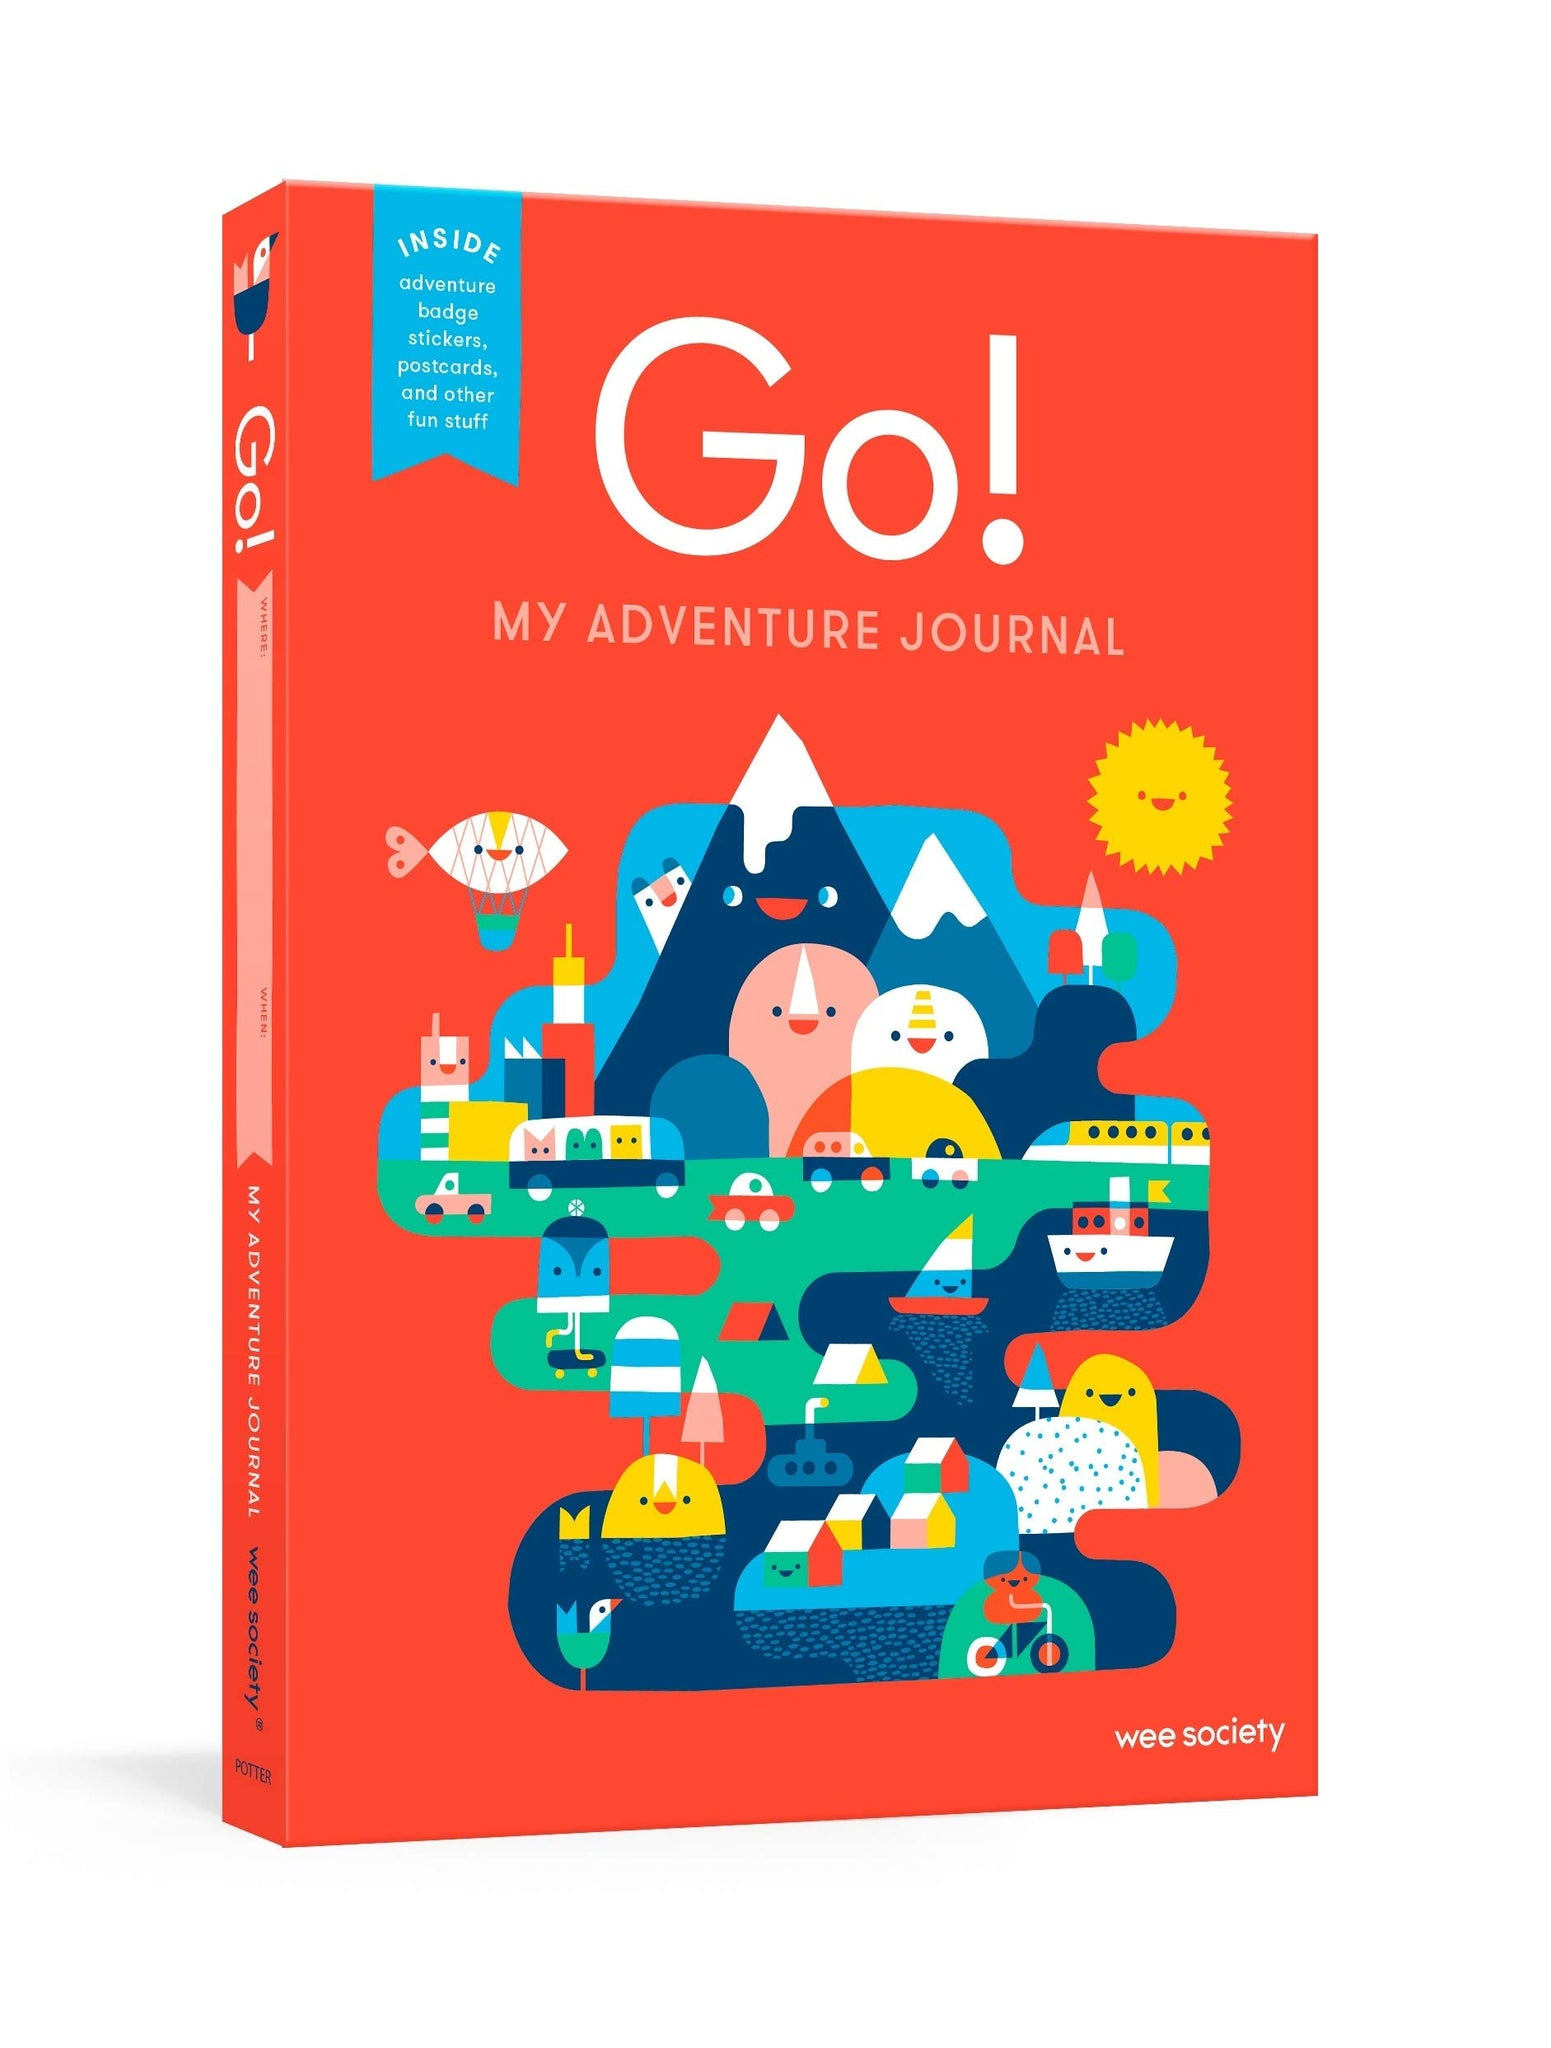 Go! My Adventure Journal